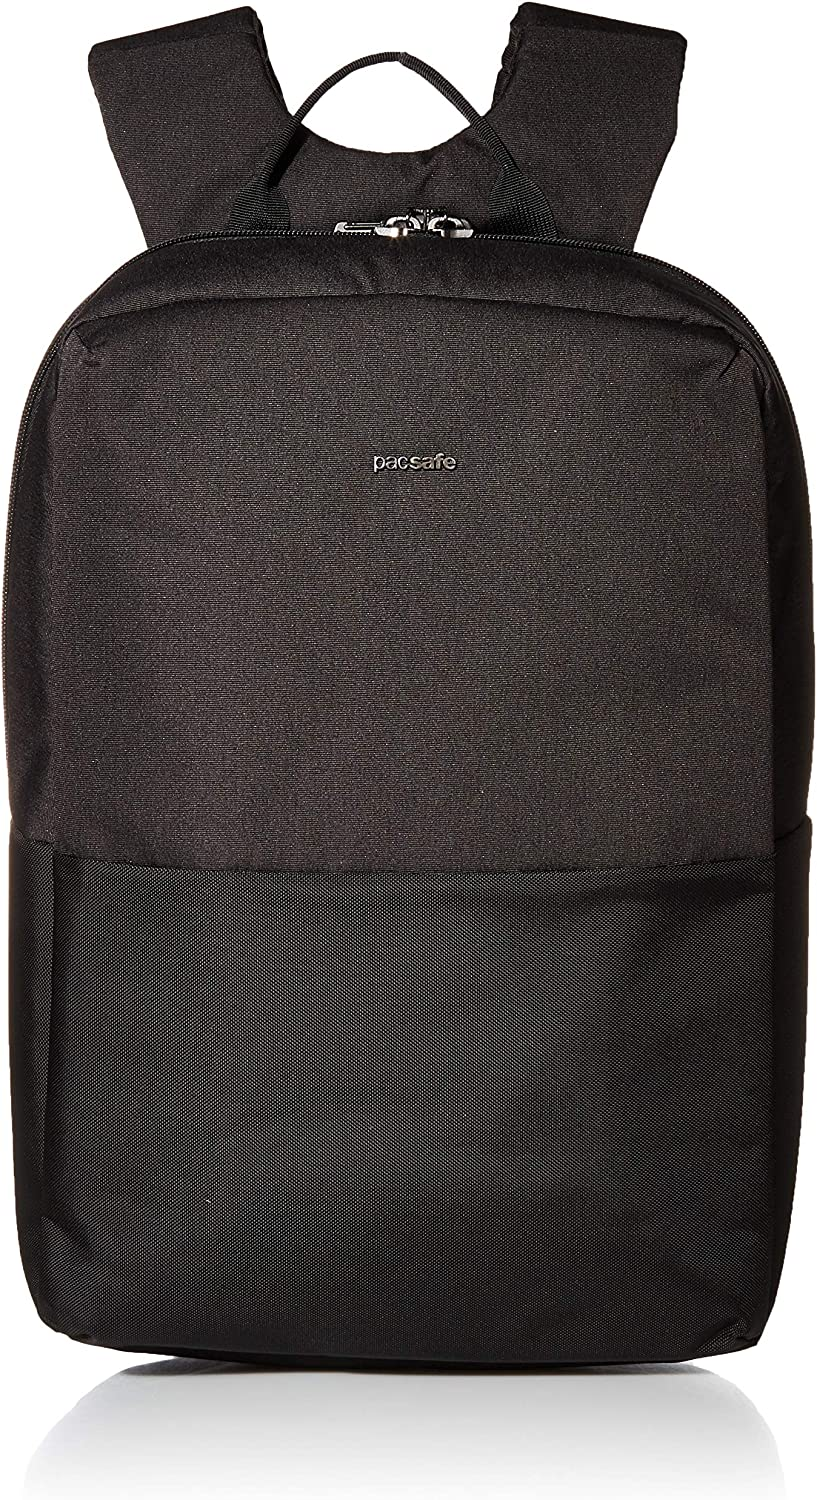 "Pacsafe 15"" Intasafe X Laptop Slim Anti-Theft Backpack"